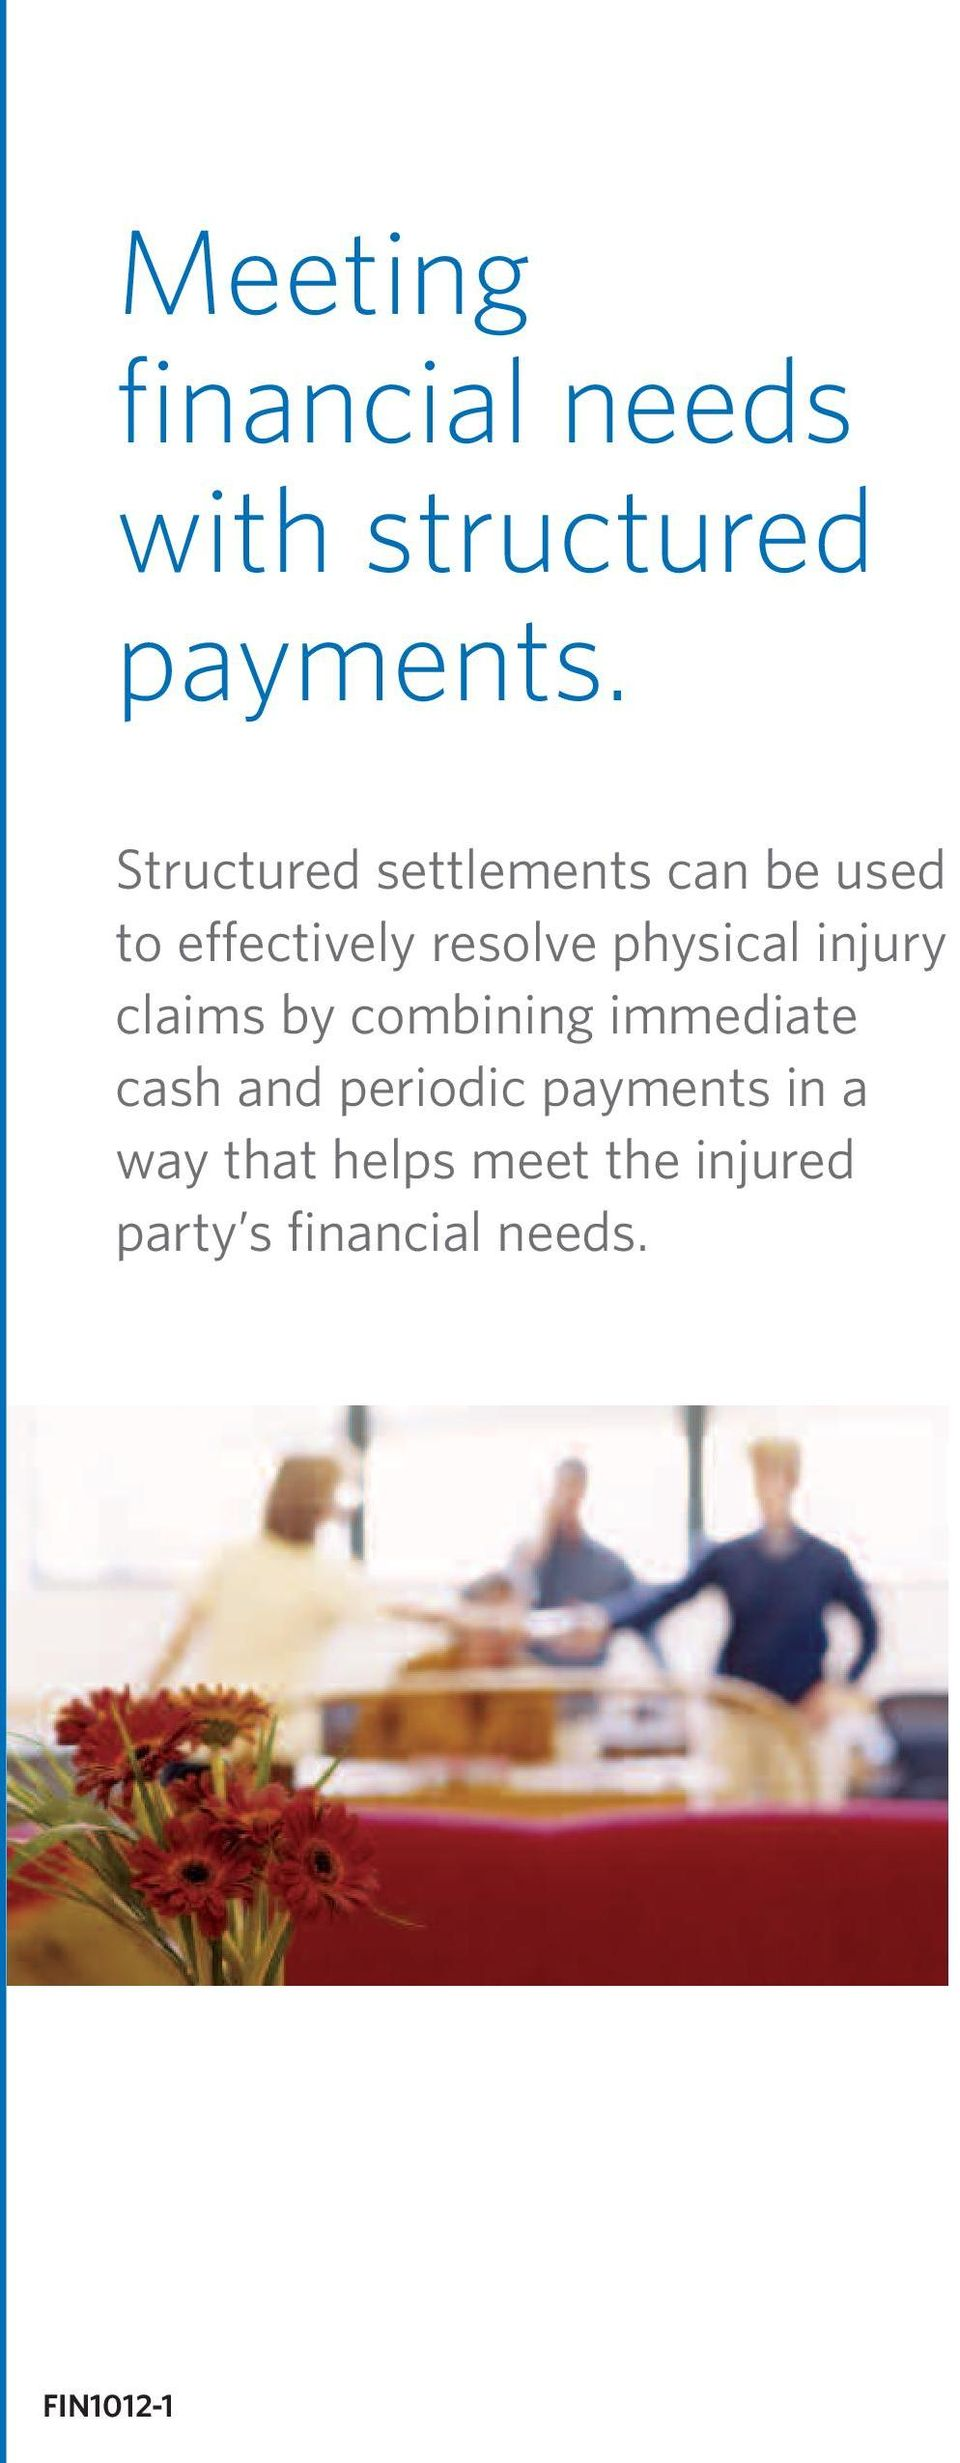 physical injury claims by combining immediate cash and